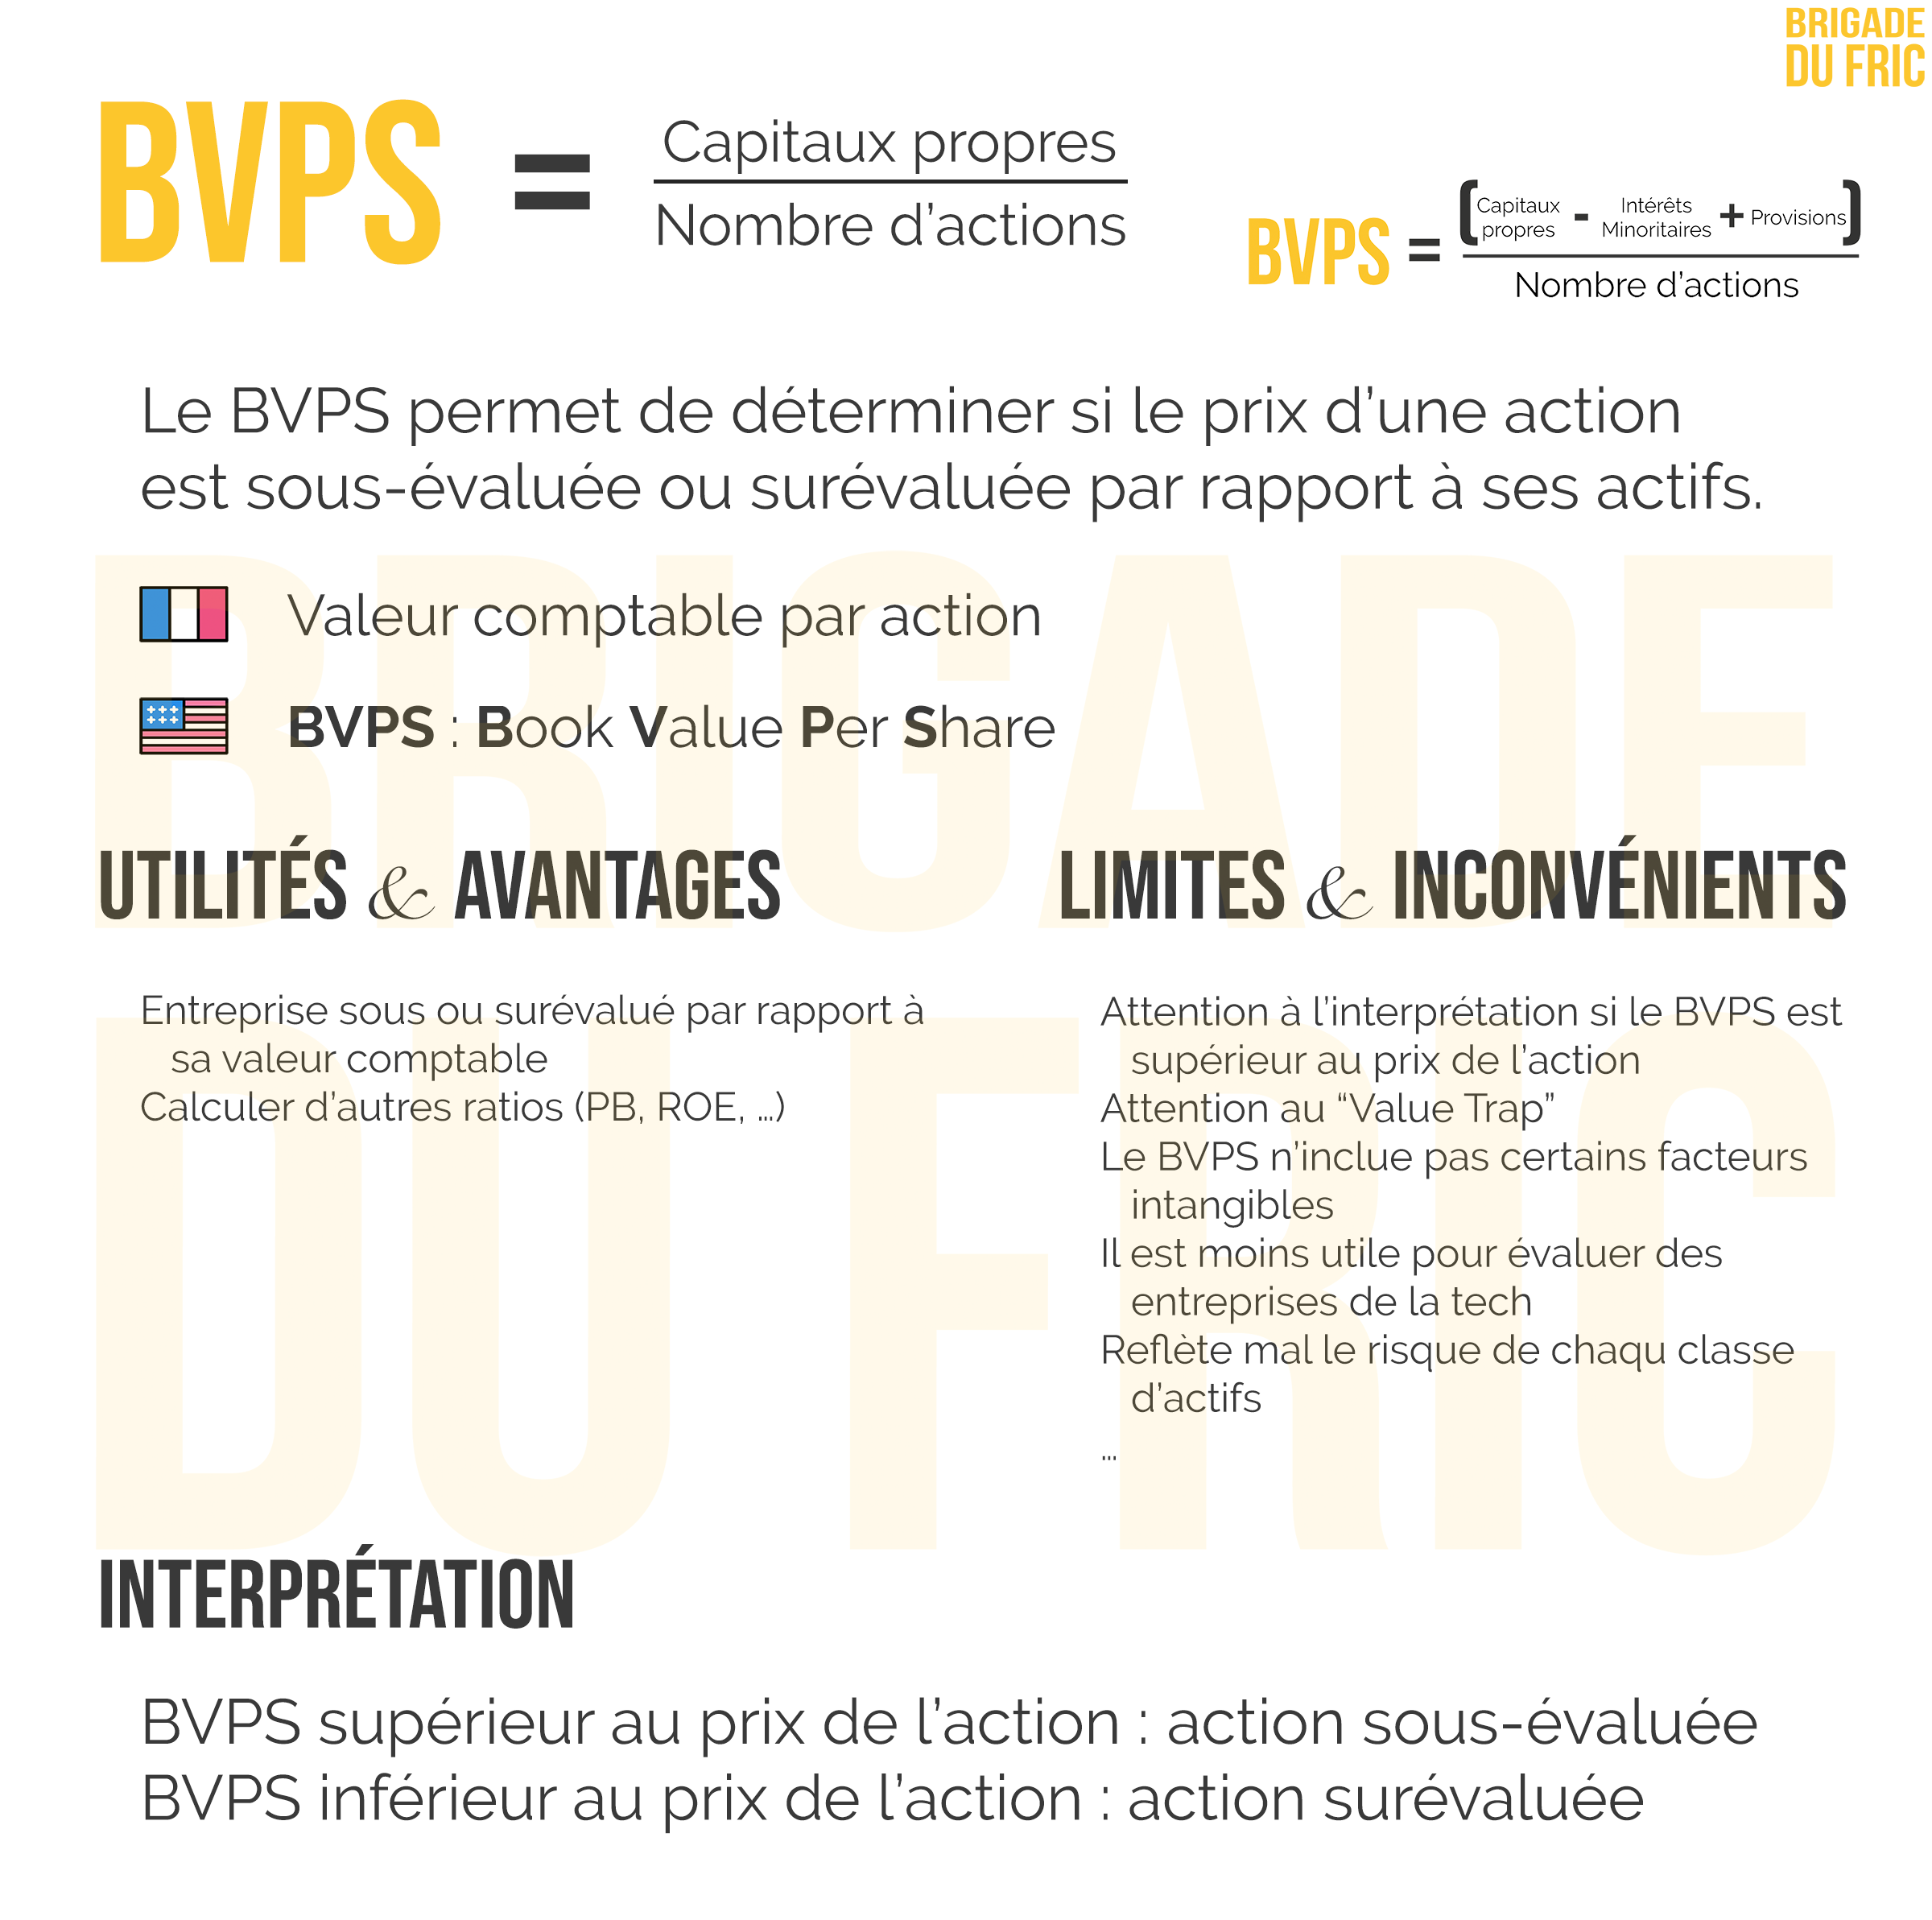 BVPS - Book Value Per Share - bourse - fiche résumé